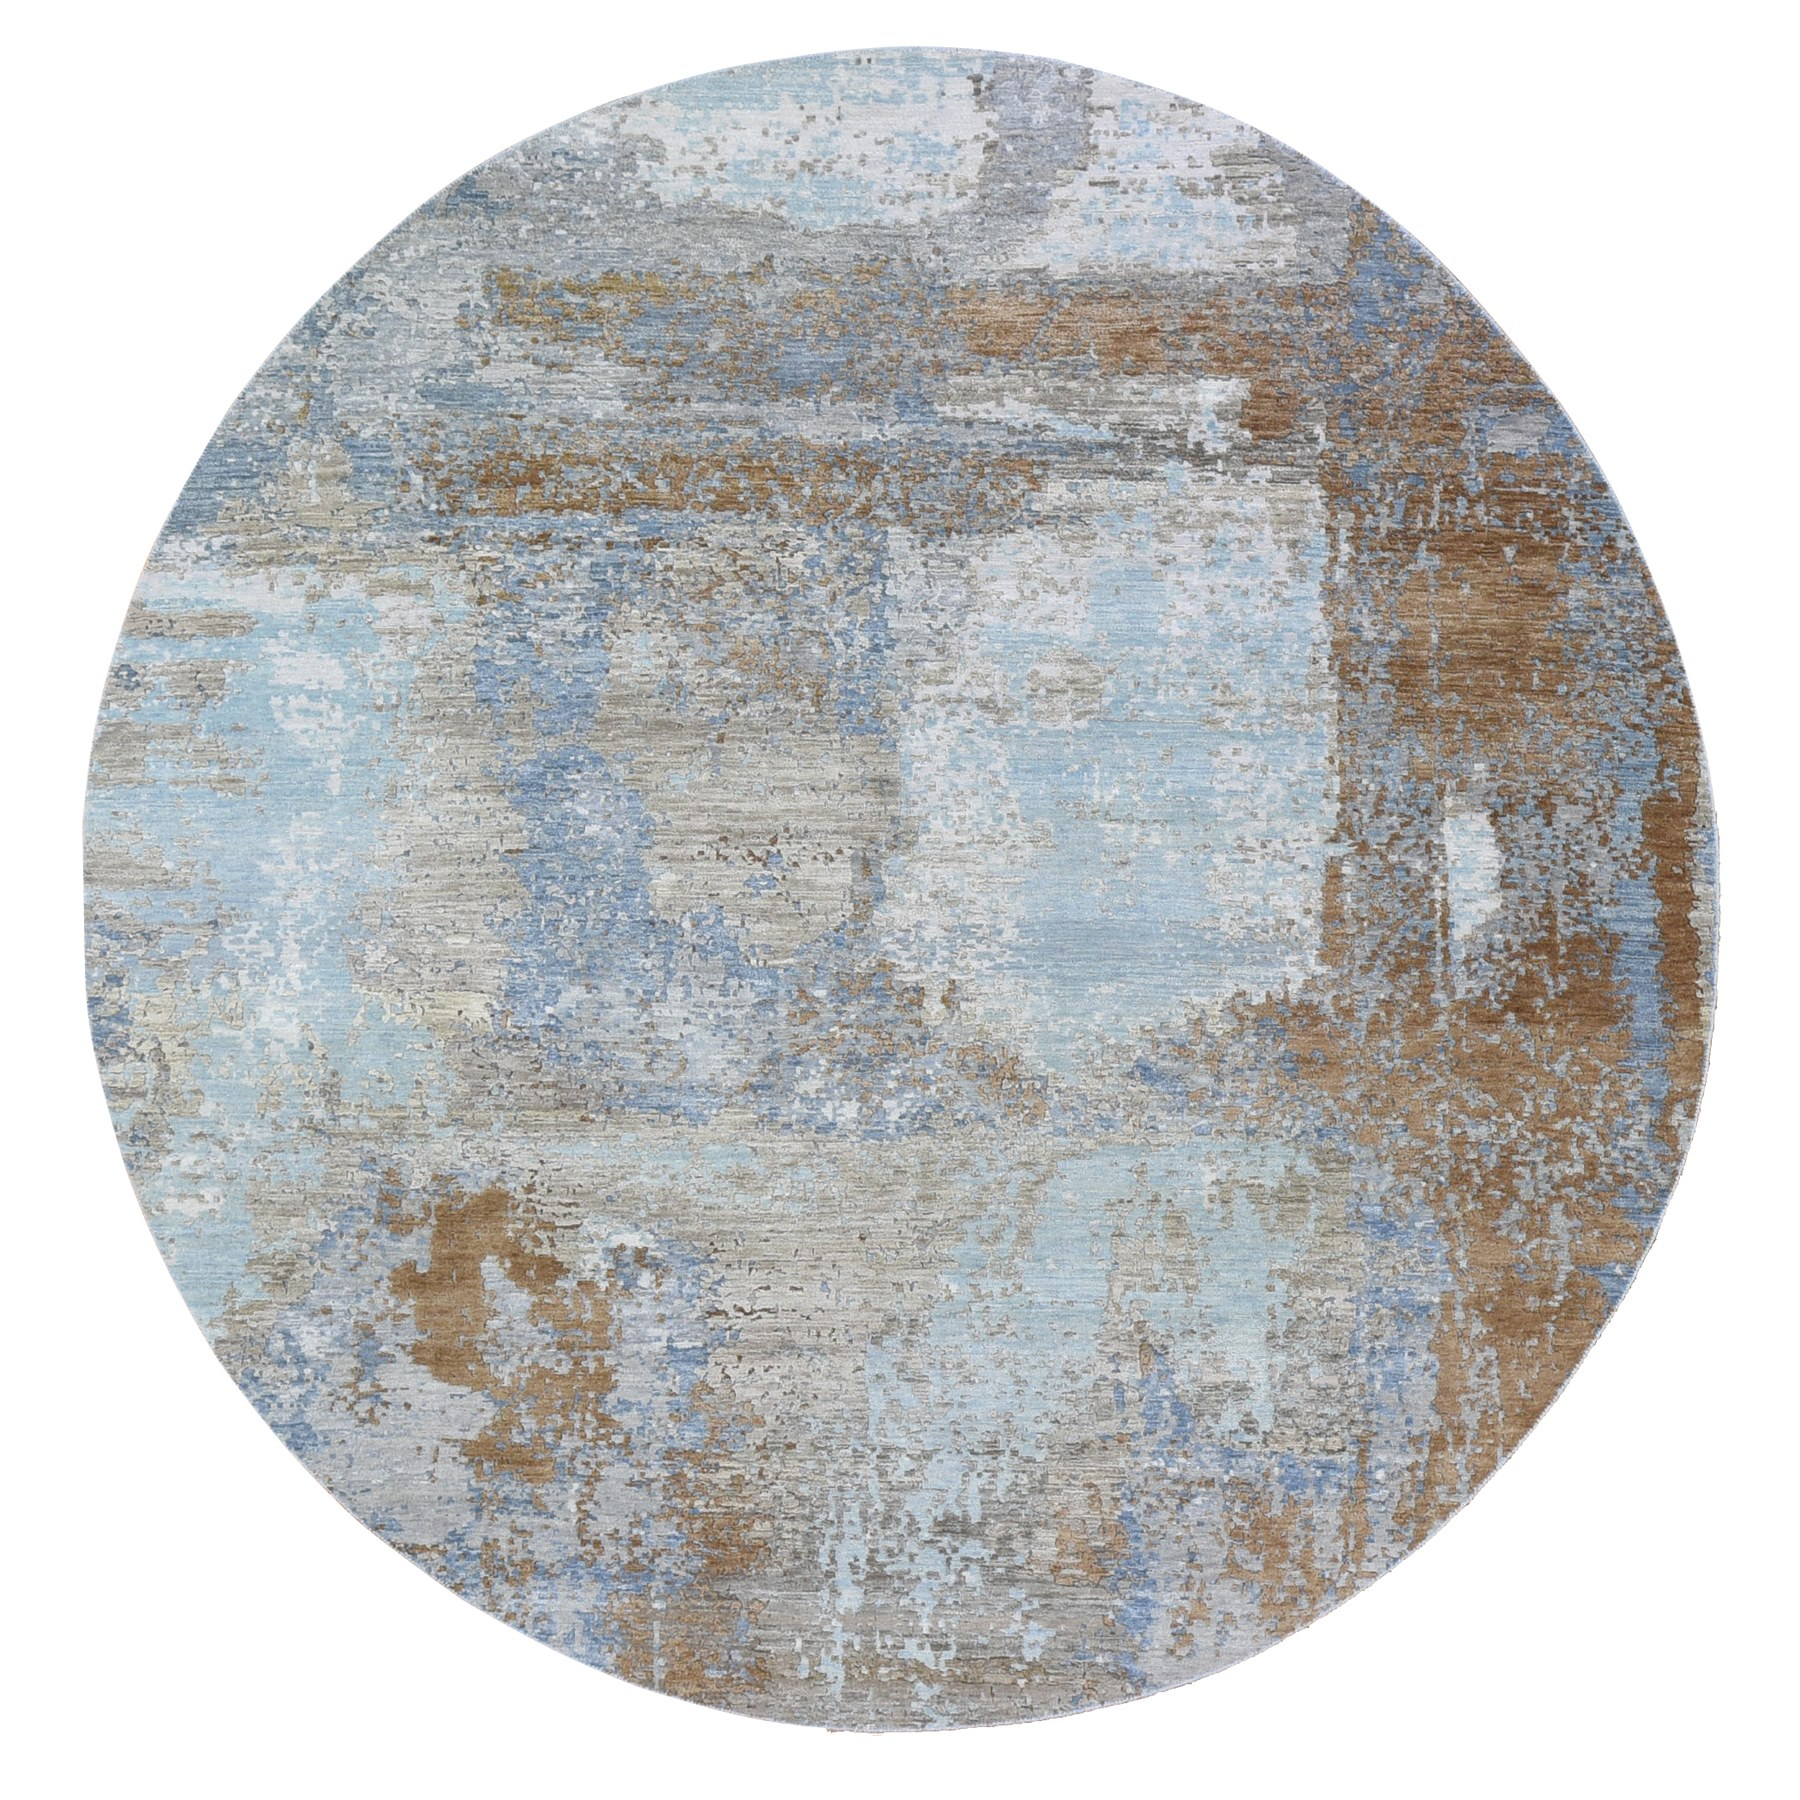 8'x8' Light Blue Abstract Design Wool and Silk Hi-Low Pile Denser Weave Hand Knotted Round Oriental Rug